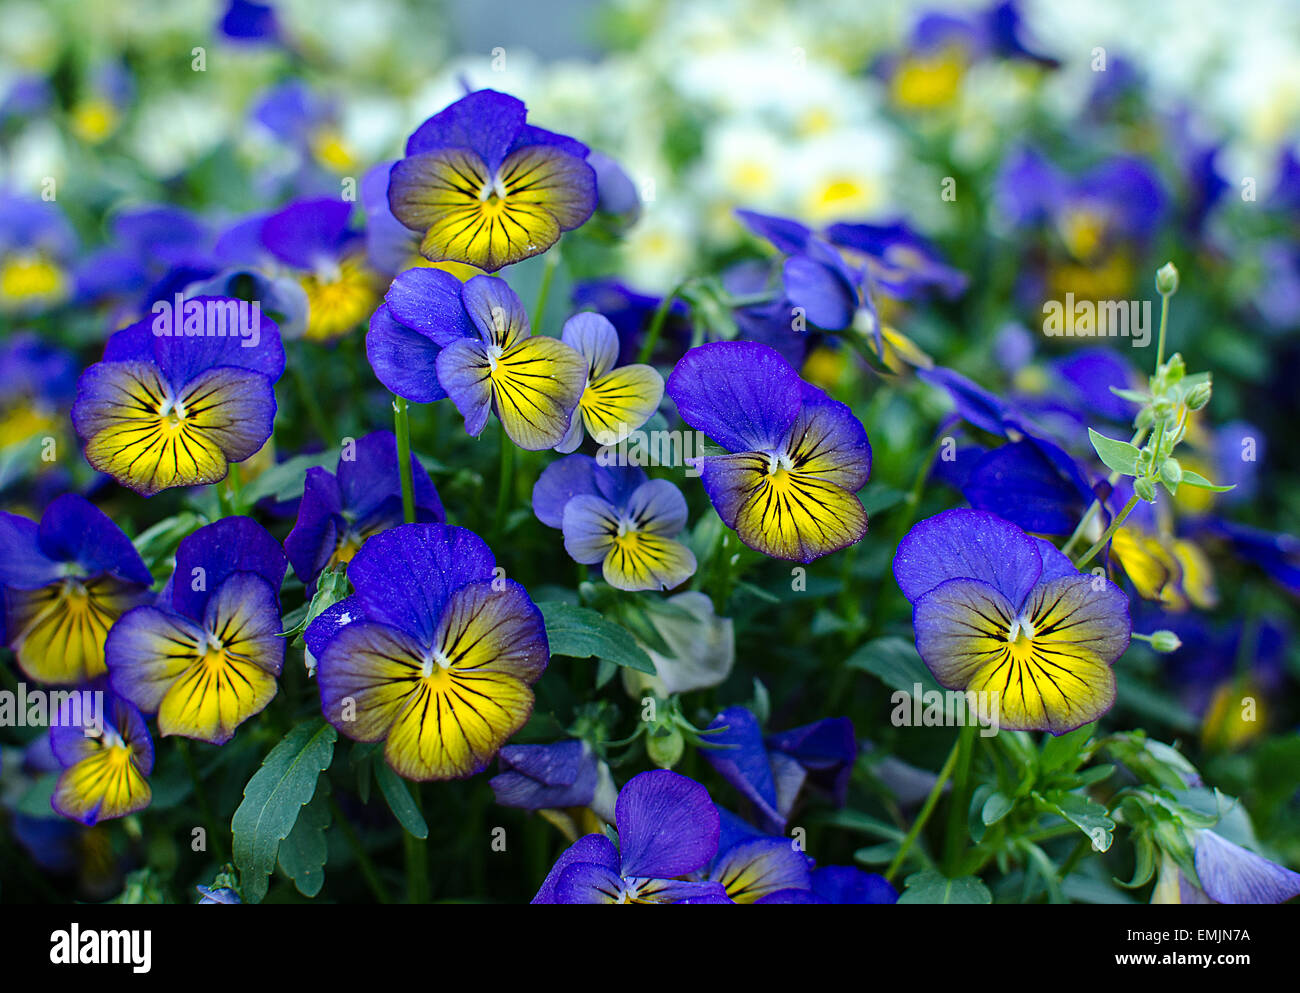 Bunch Of Violets Stock Photos Bunch Of Violets Stock Images Alamy